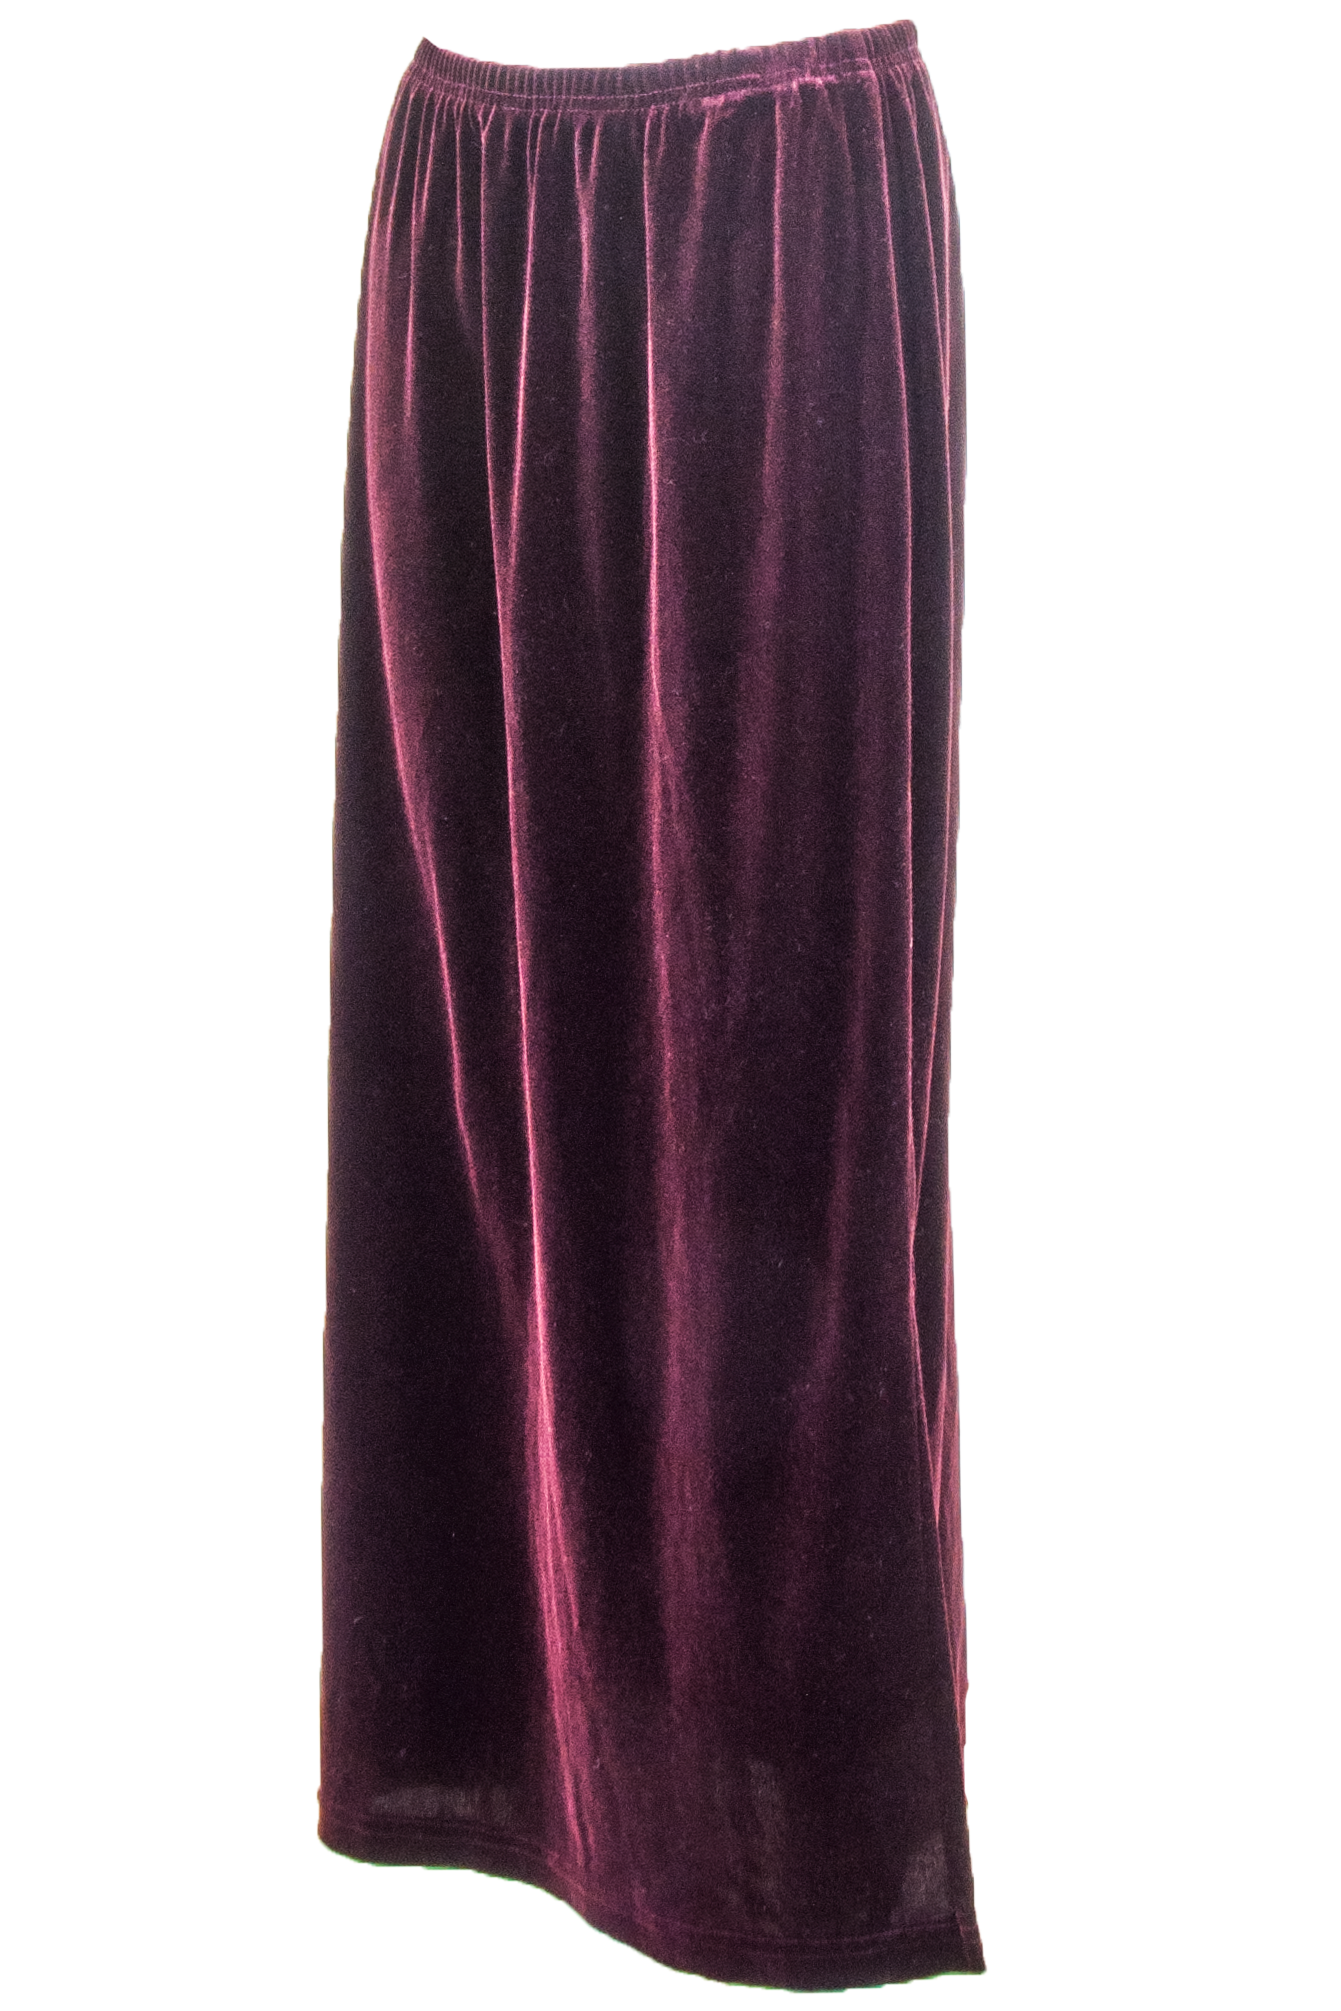 oxblood velvet maxi skirt